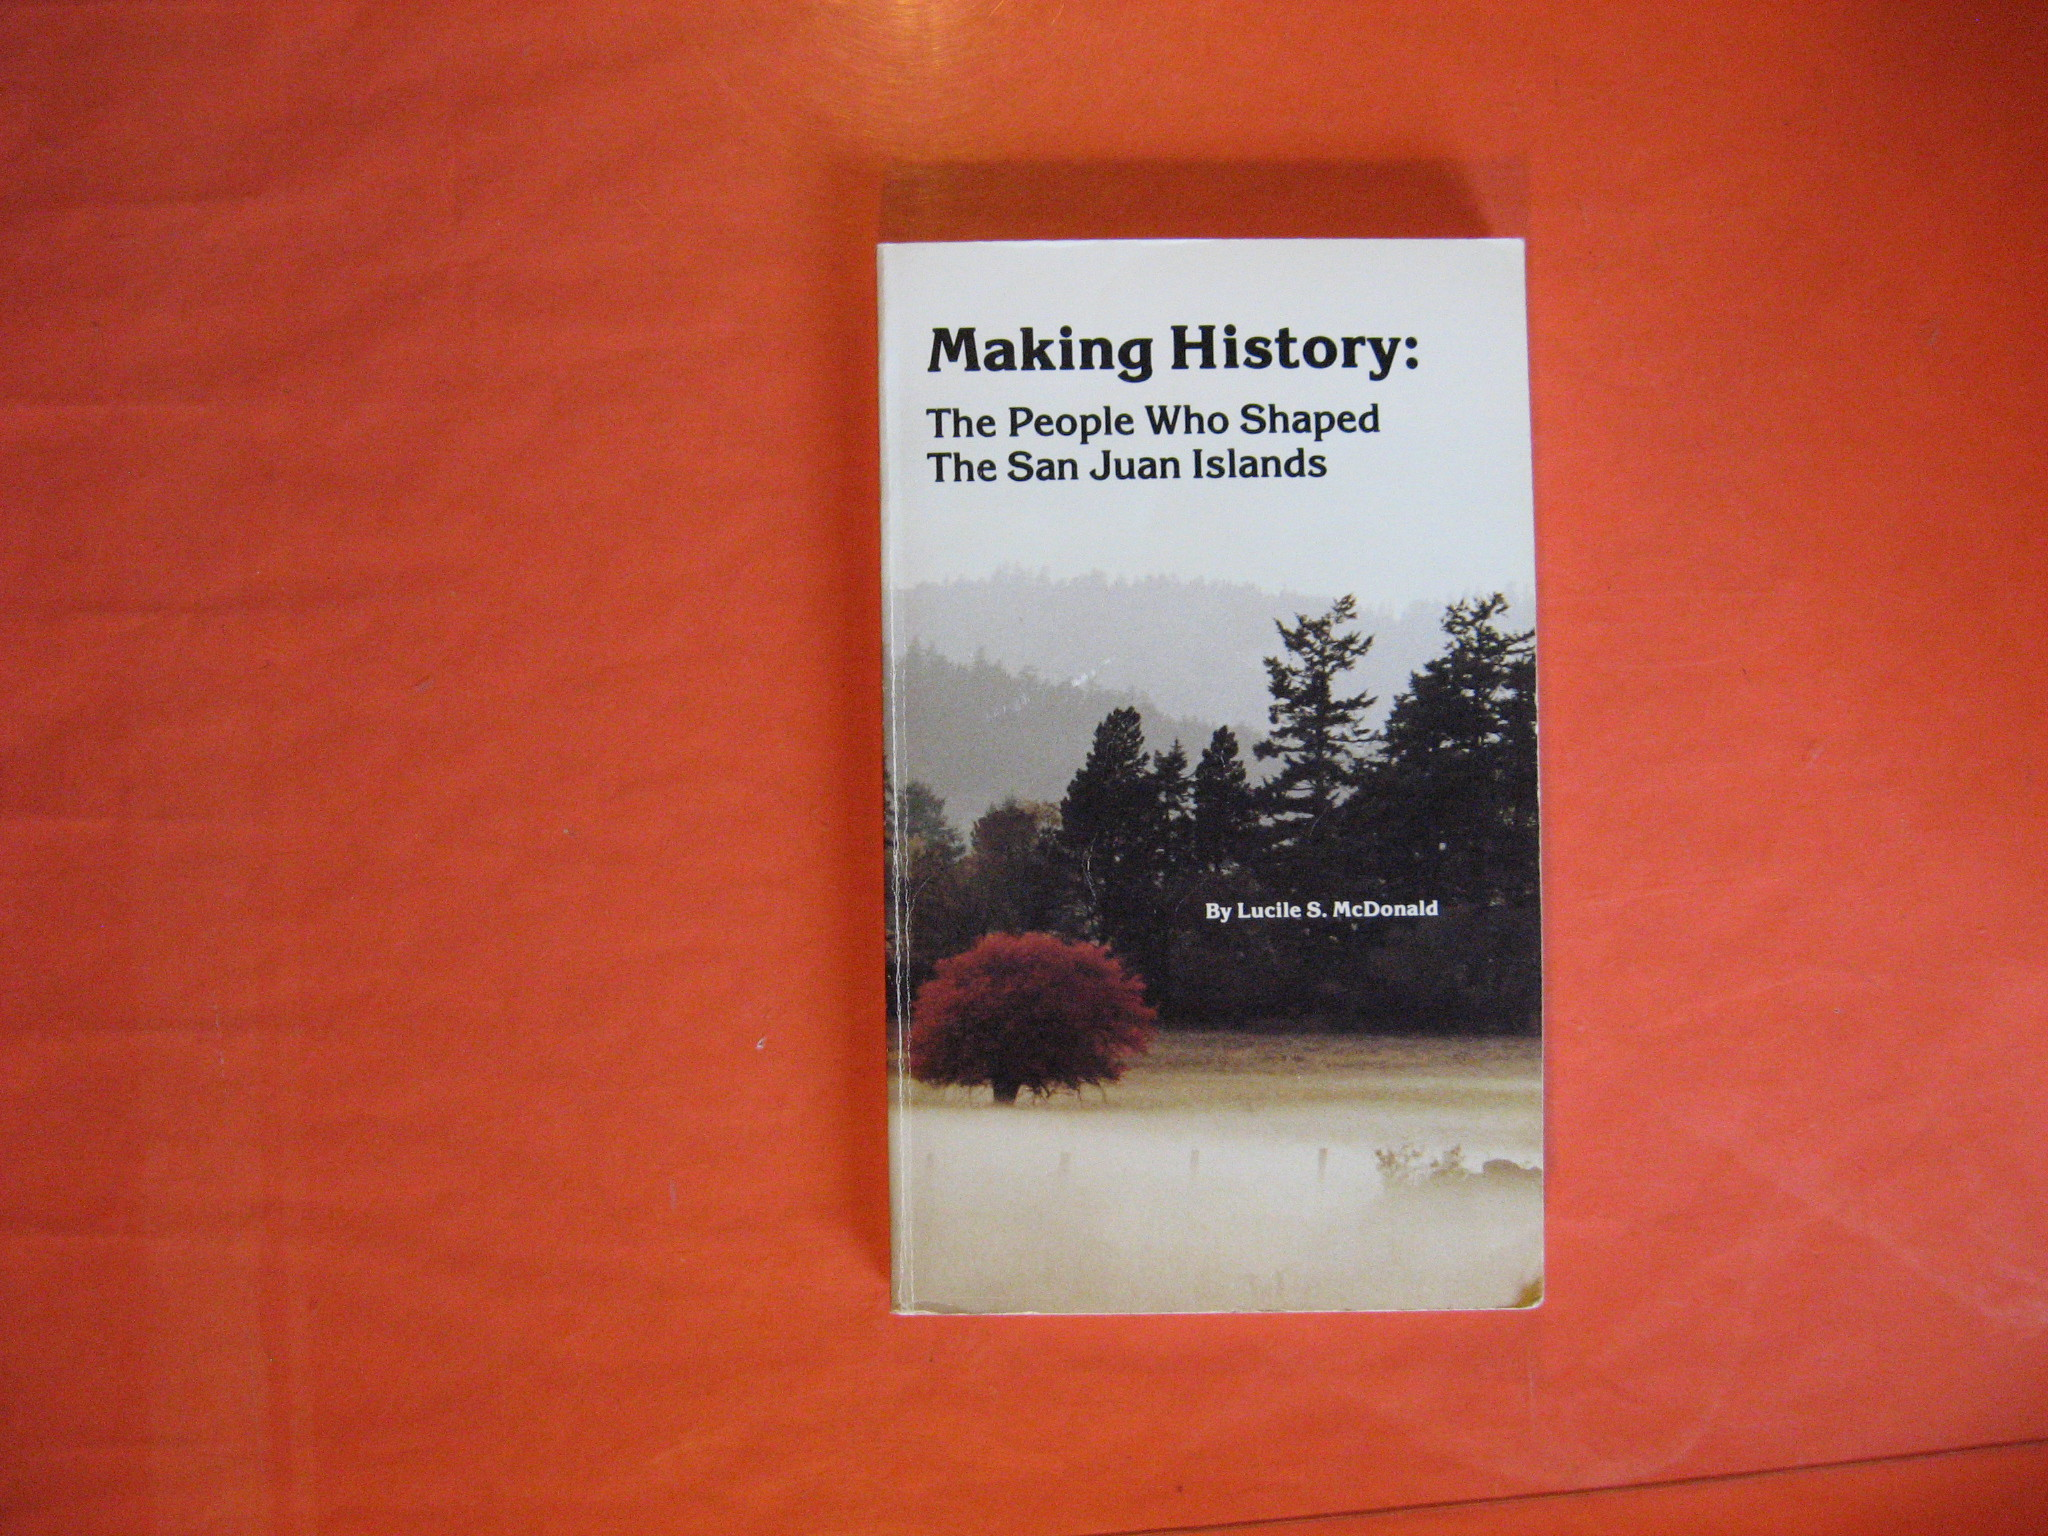 Making History: The People Who Shaped the San Juan Islands, Lucile S. McDonald